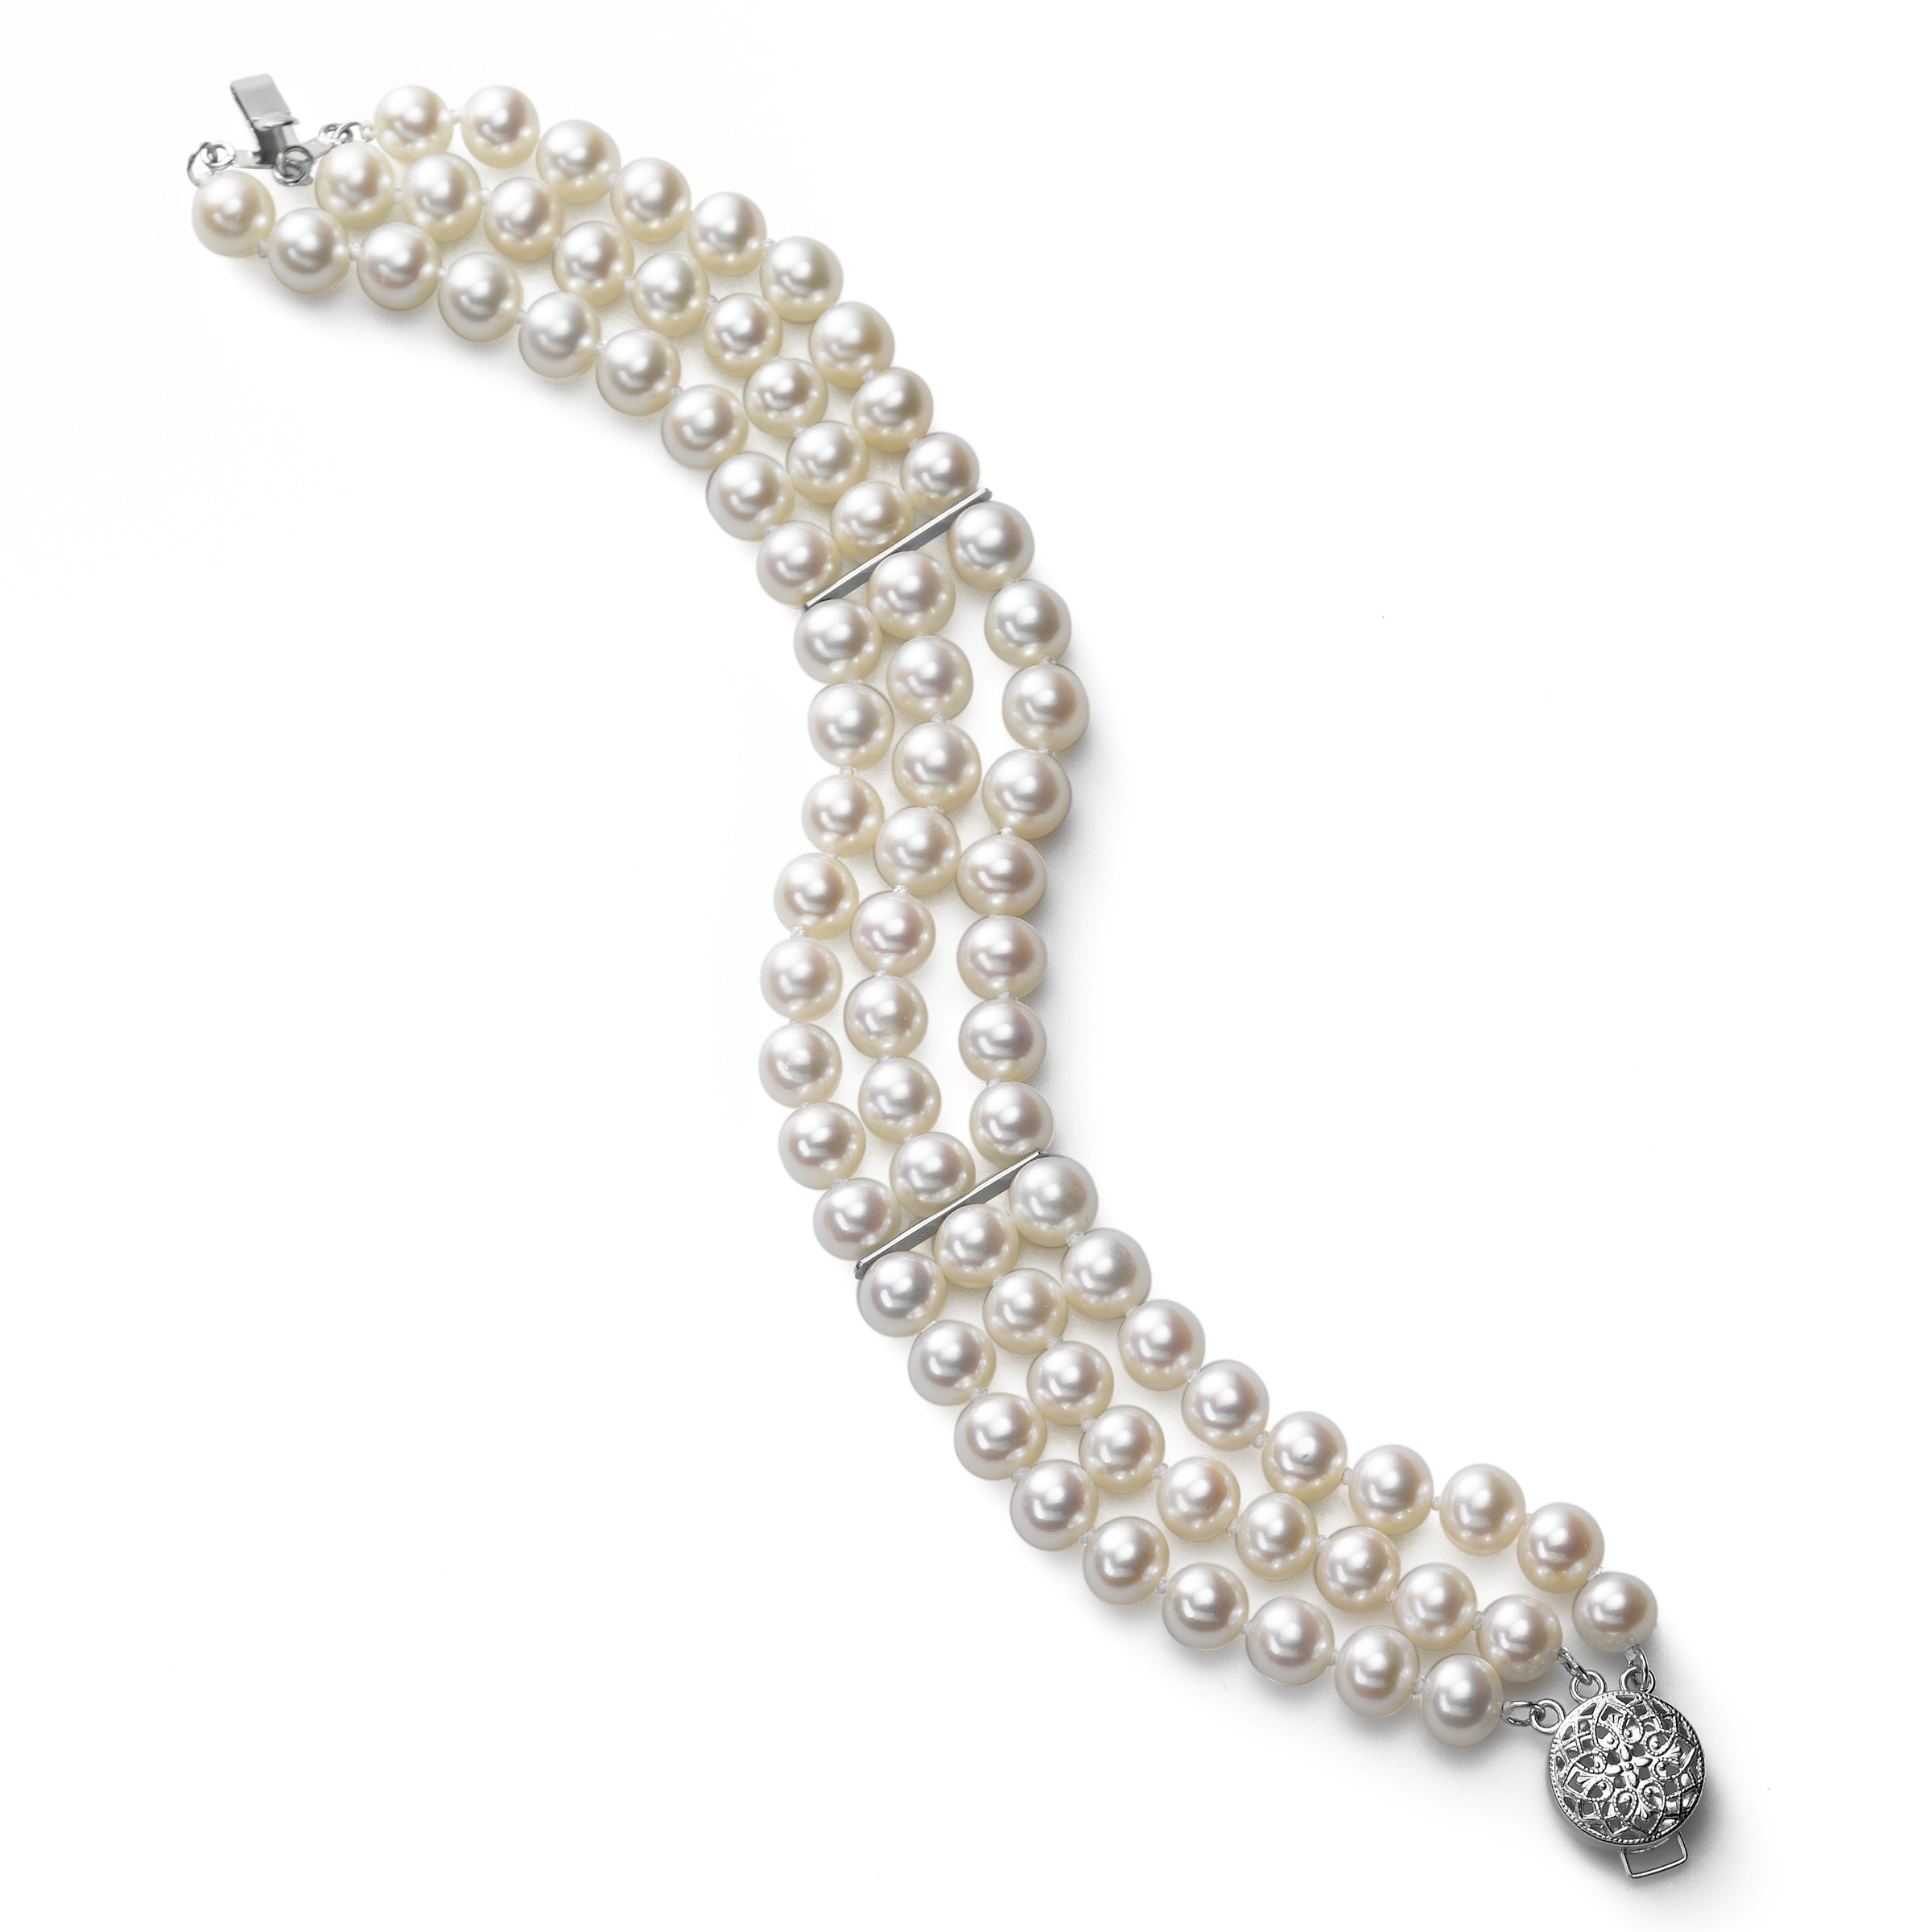 3 Row Freshwater Cultured Pearl Bracelet, 14K White Gold